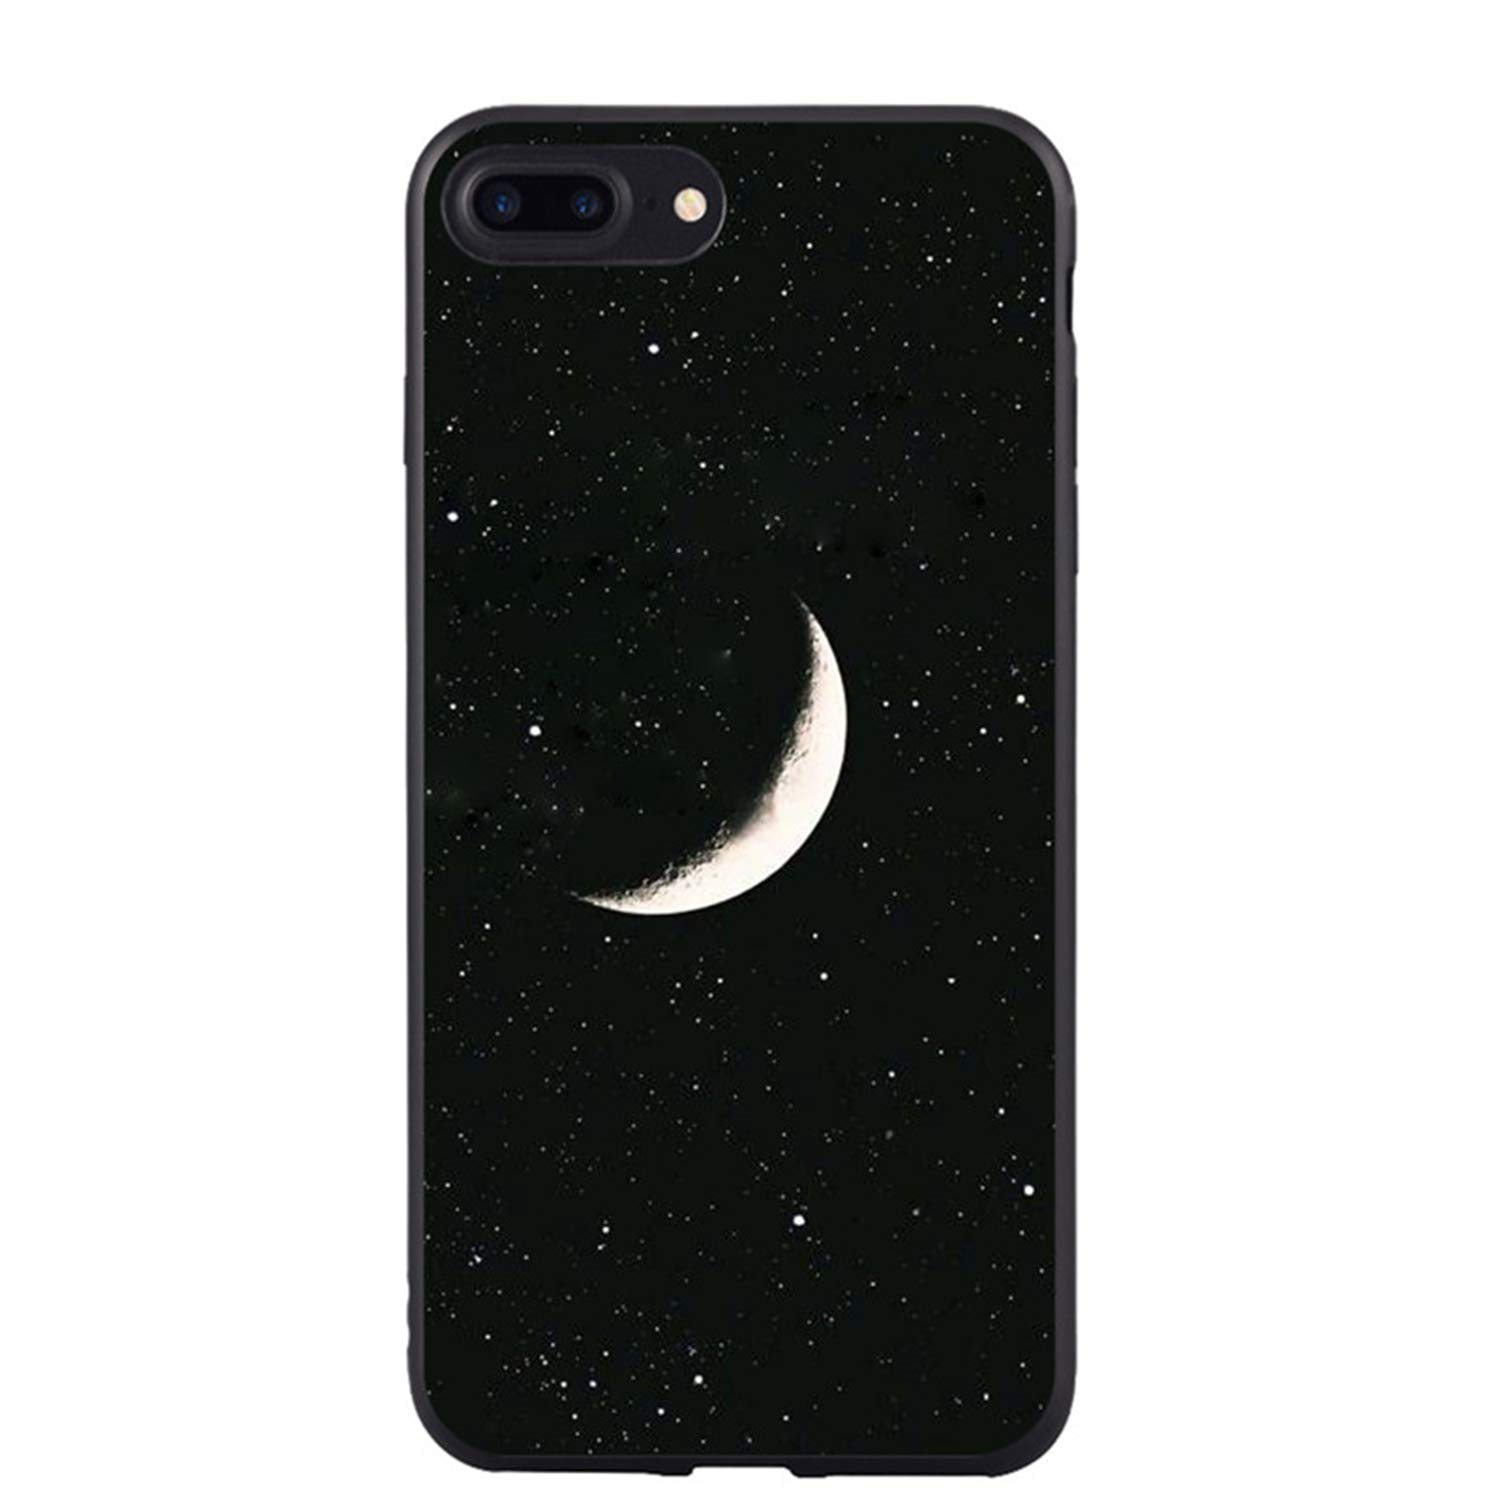 Black Girl Moon Stars Space Astronaut Tpu Soft Silicone Phone Cover Case For Iphone 5 5s Se 6 6s Plus 7 7plus 8 8plus X 10 Cover Half-wrapped Case